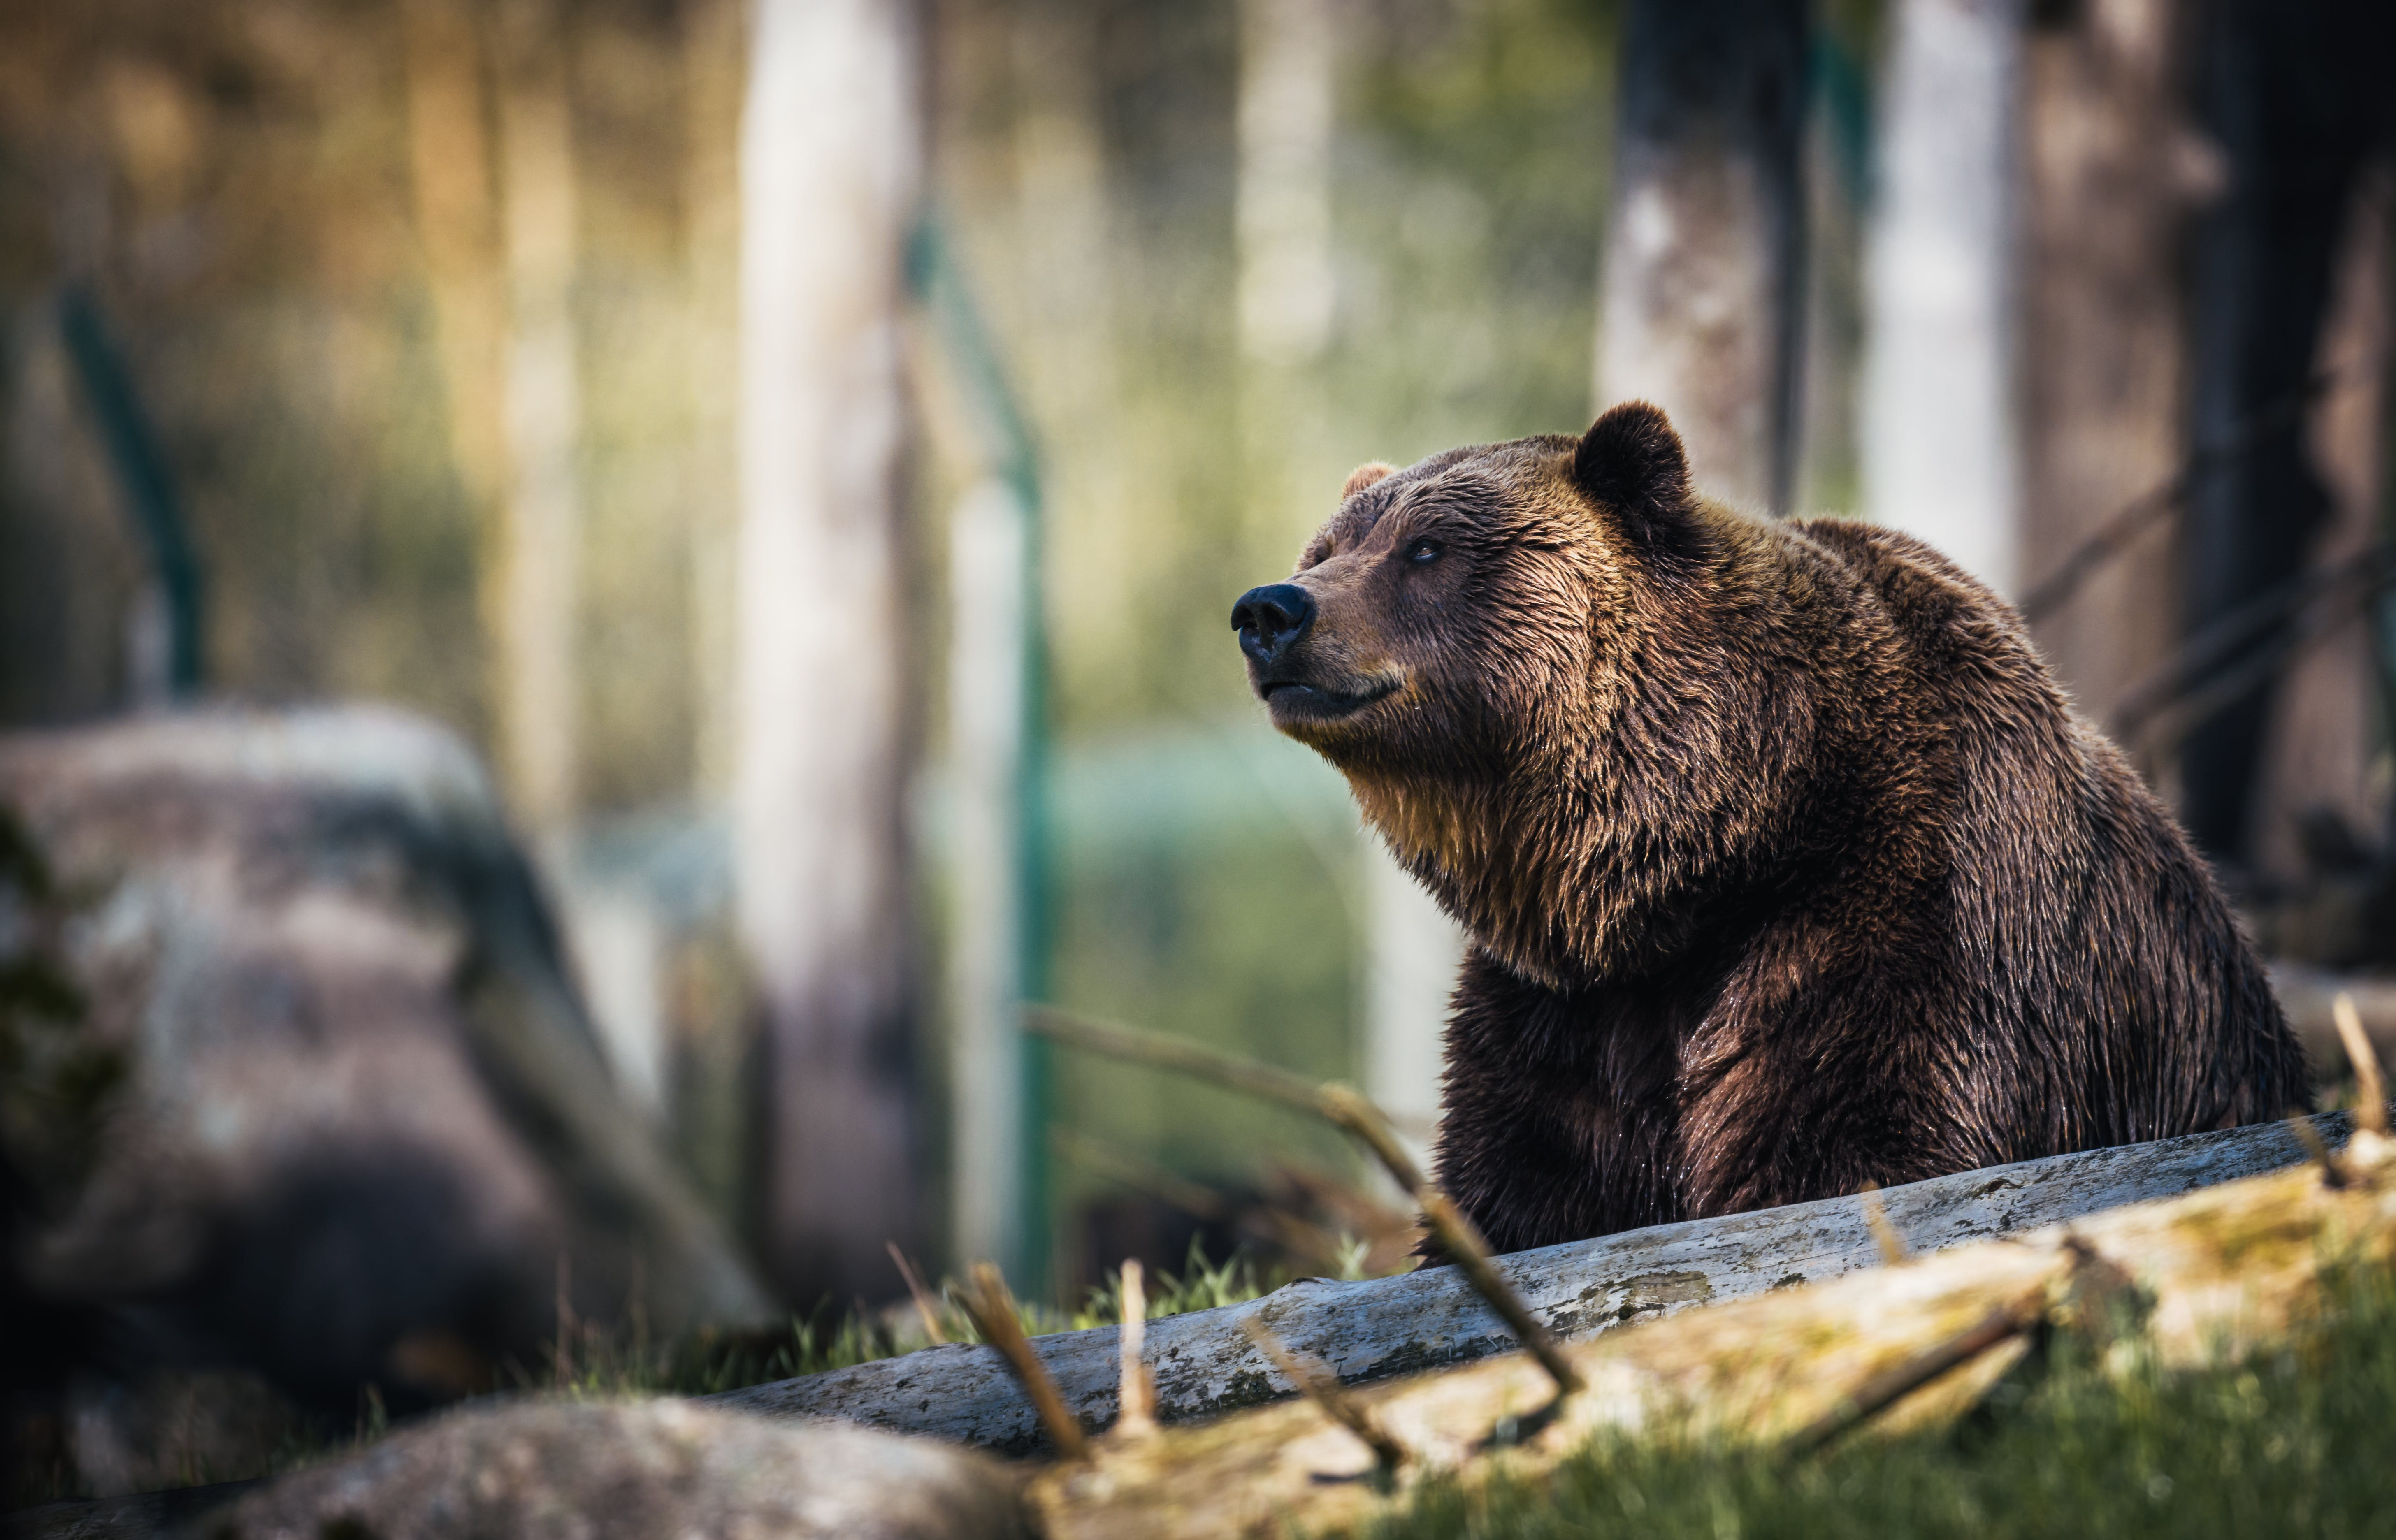 Close-Up Photography of Grizzly Bear